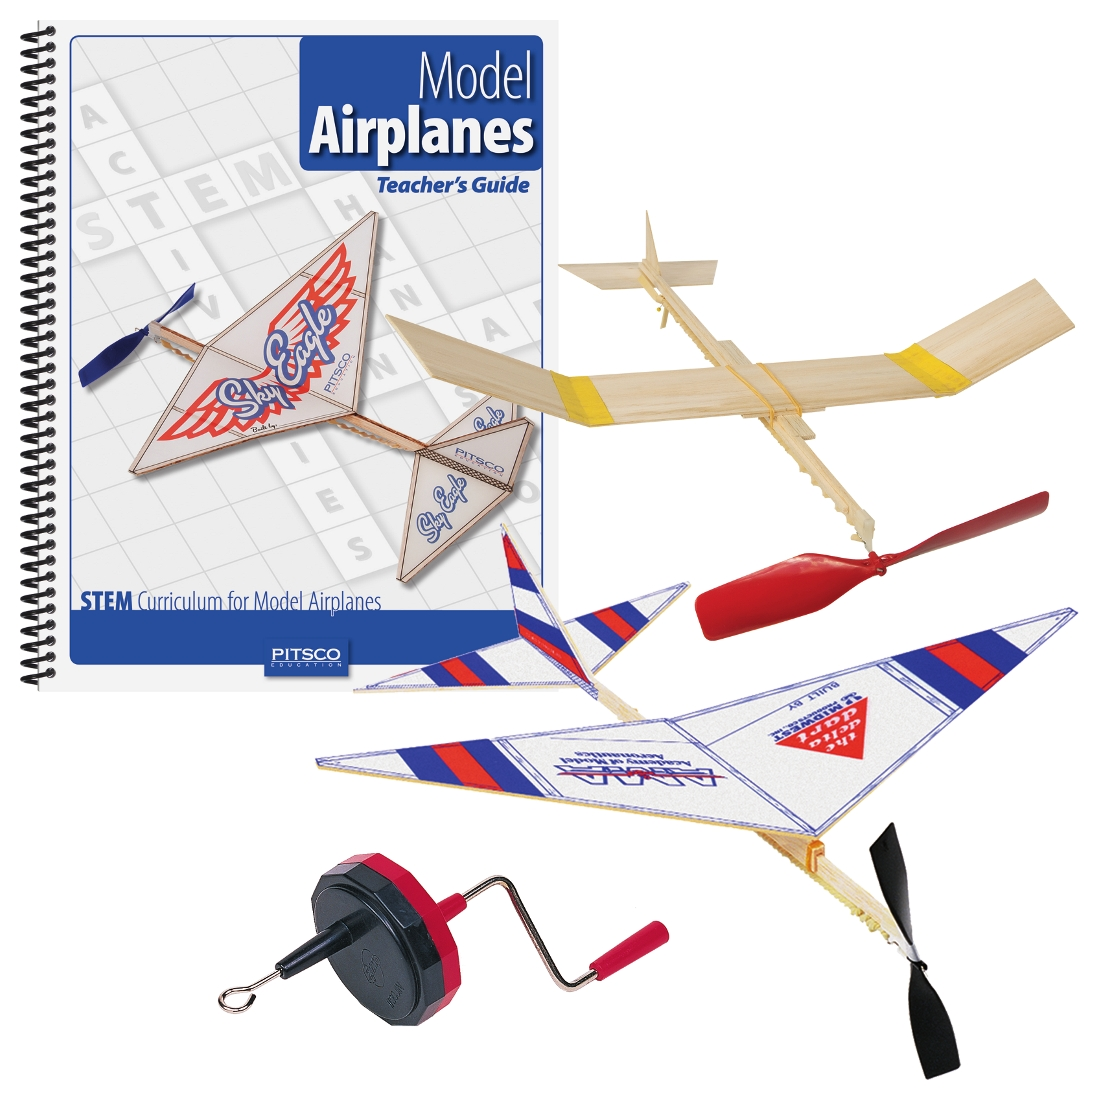 Rubber Band Powered Airplanes 115